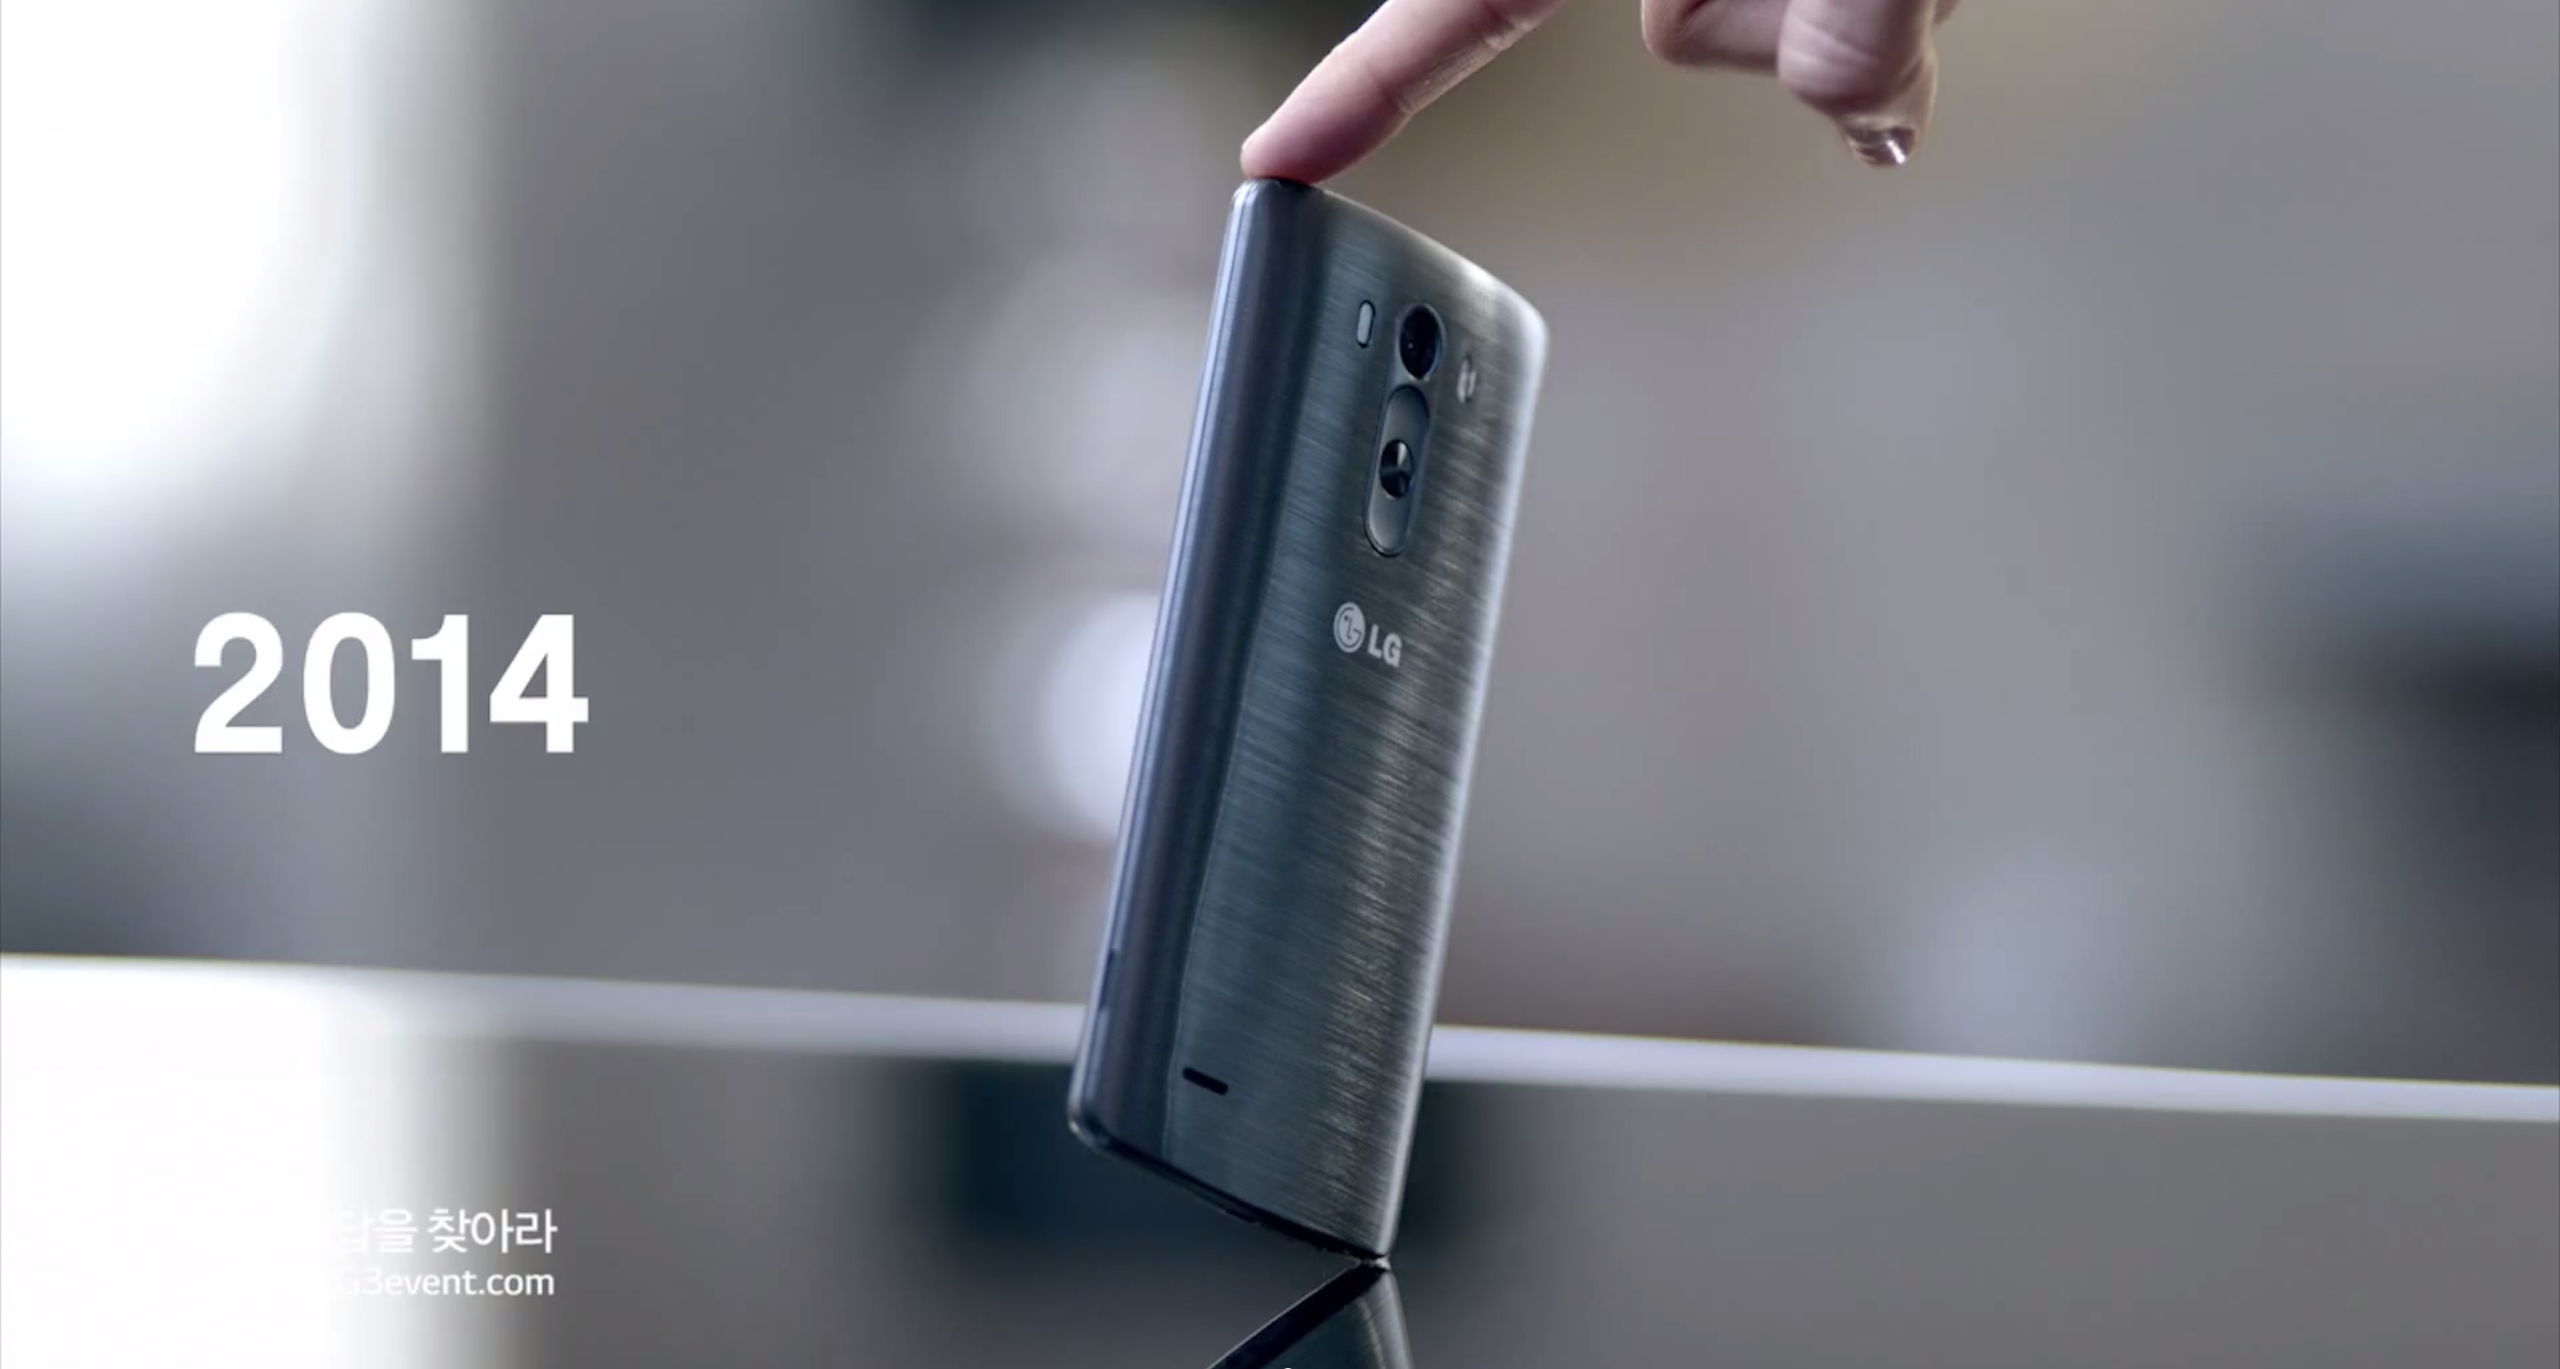 LG Teaser Videos Offer a Sneaky Peek at New G3 Smartphone